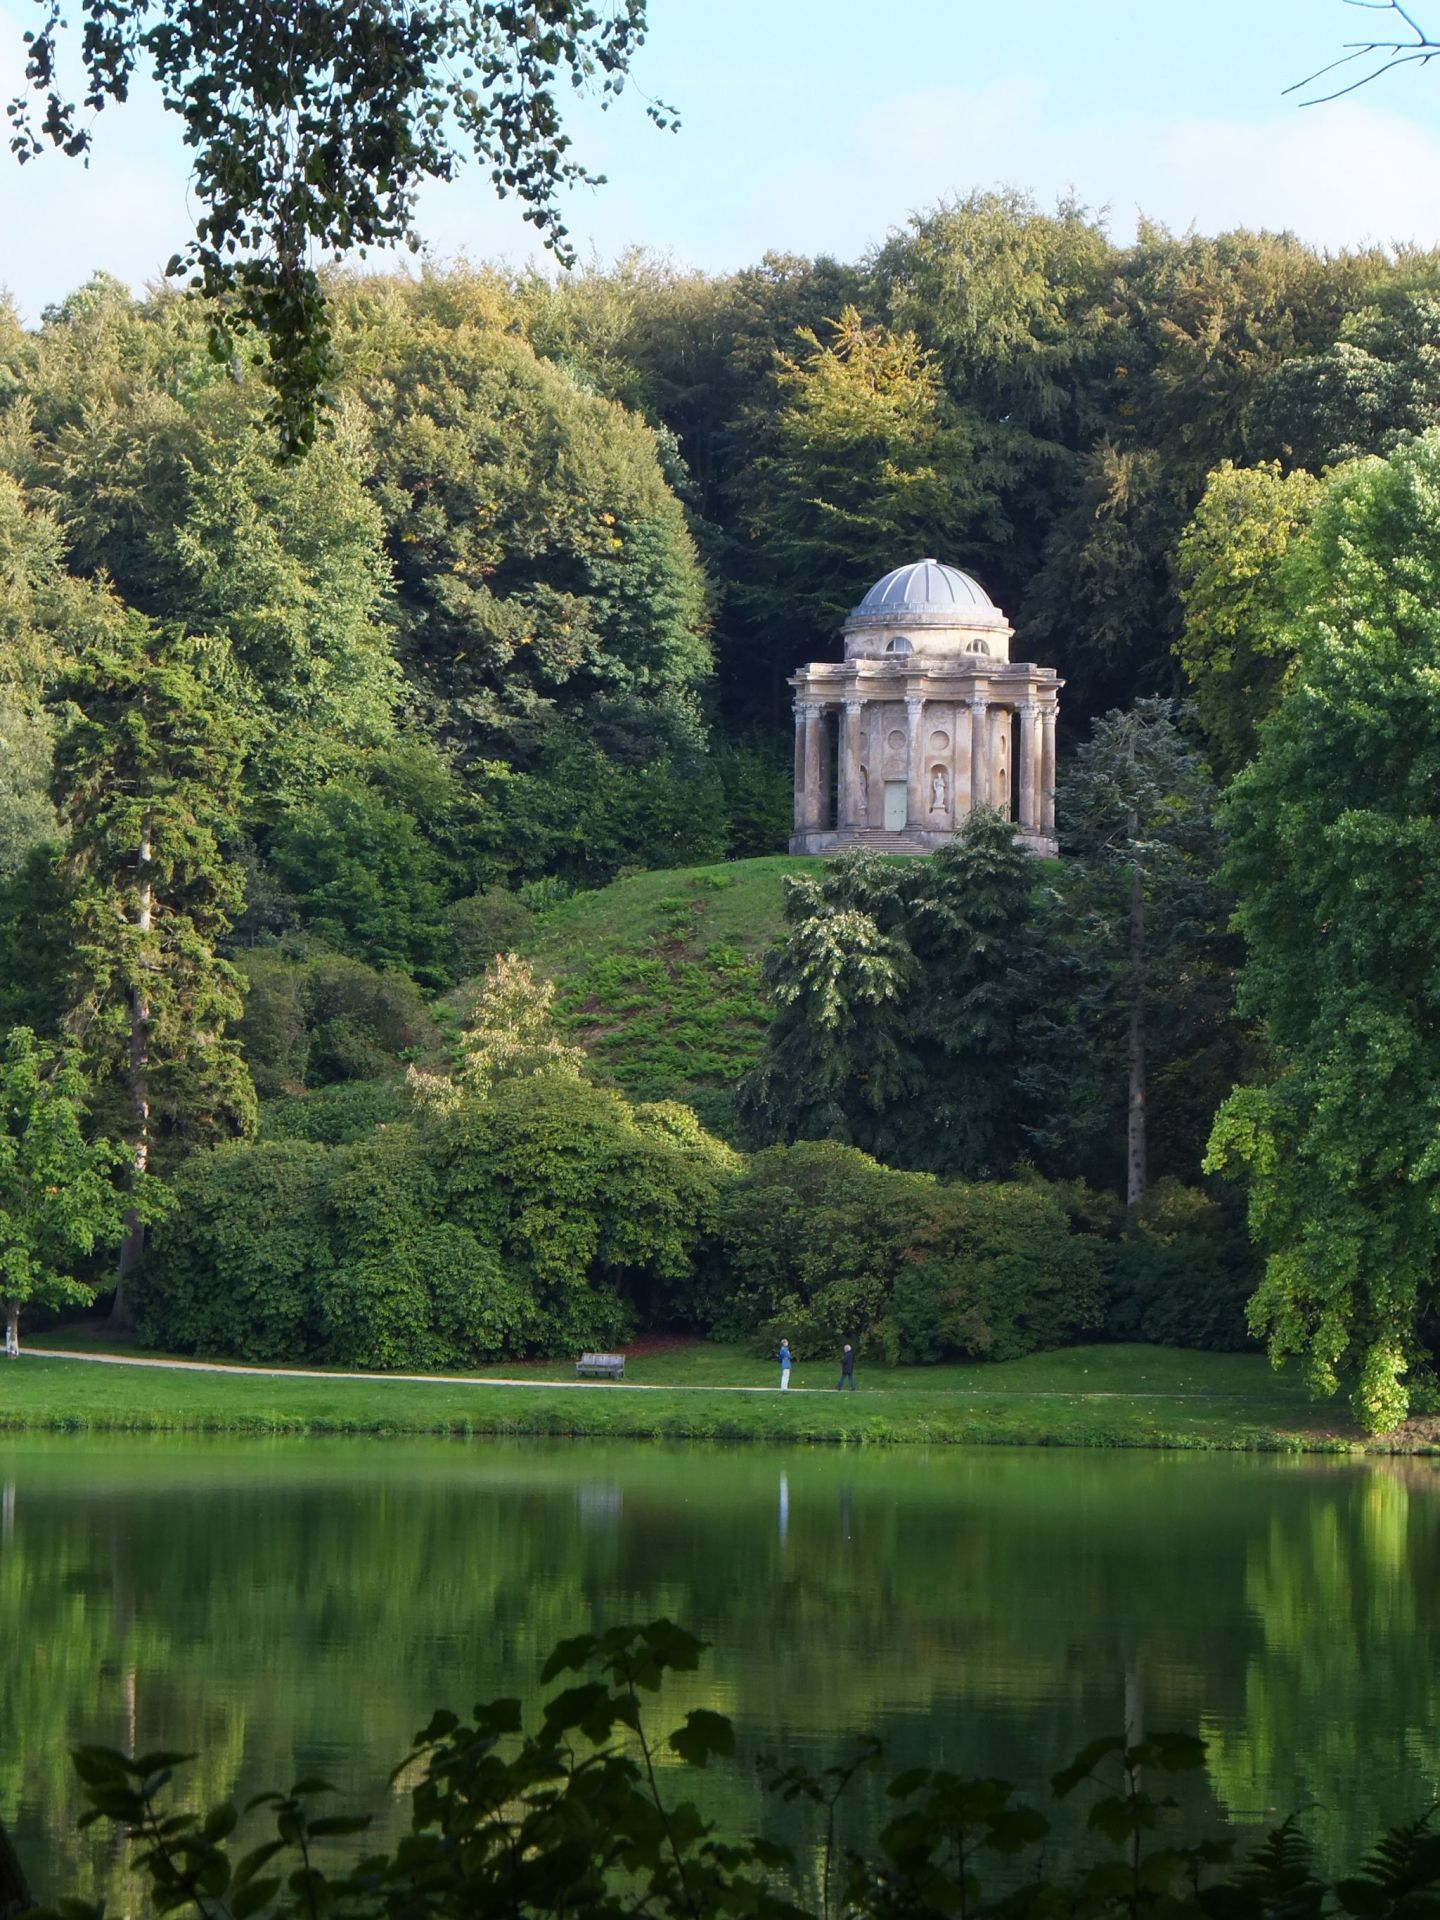 A day trip to Stourhead